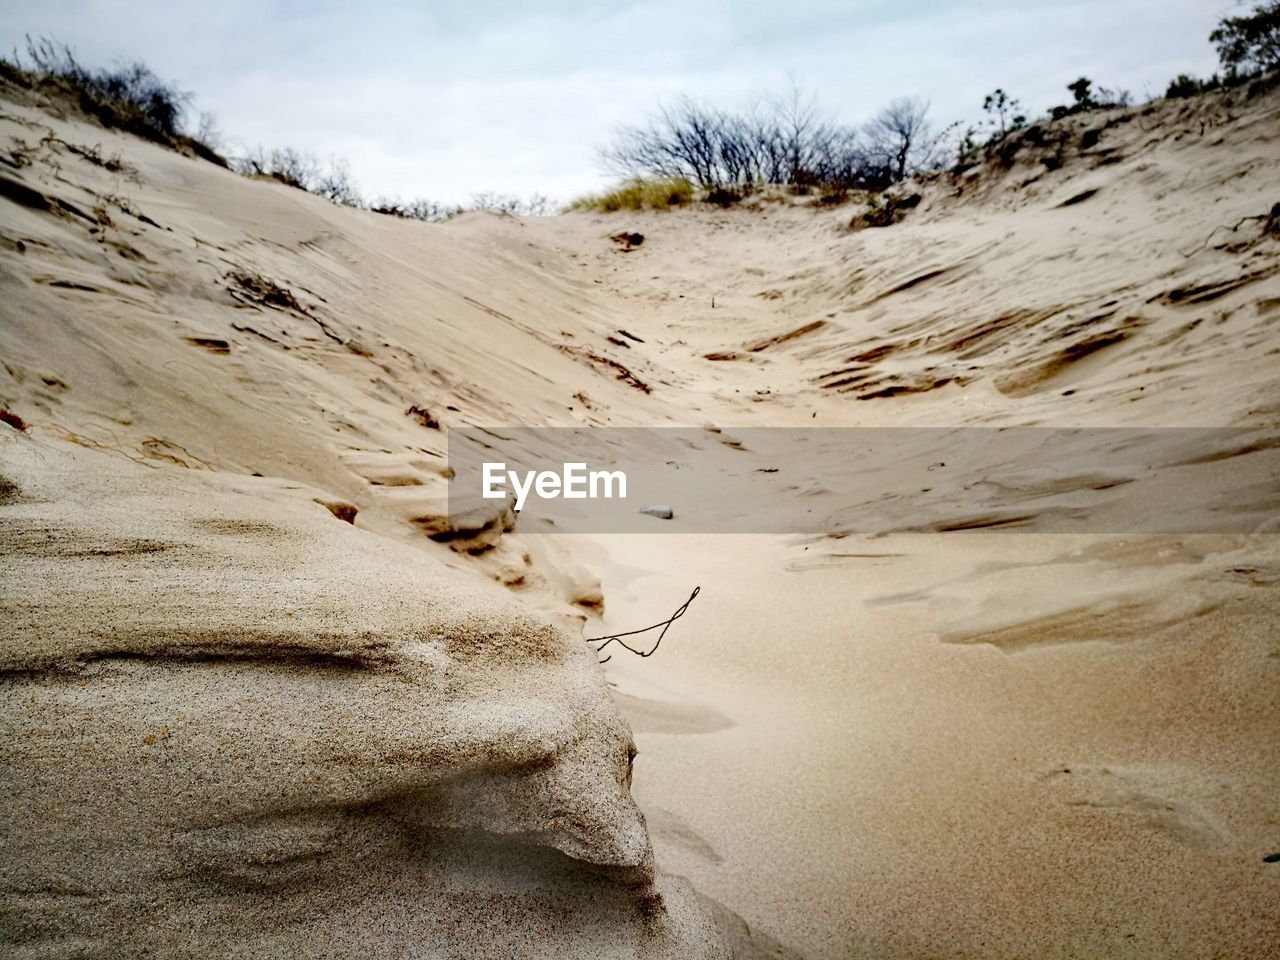 nature, outdoors, sand, day, tranquil scene, tranquility, no people, sand dune, landscape, beauty in nature, scenics, sky, beach, desert